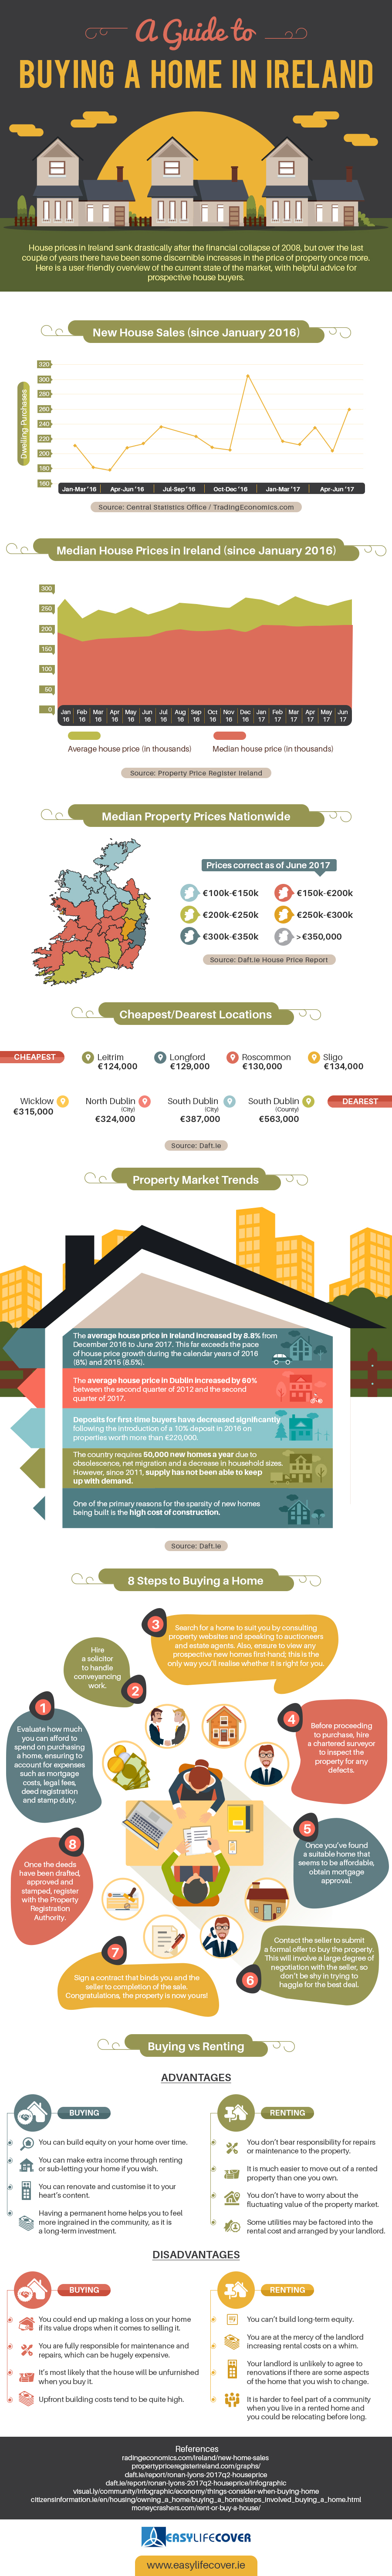 A-Guide-to-Buying-a-Home-in-Ireland-Infographic